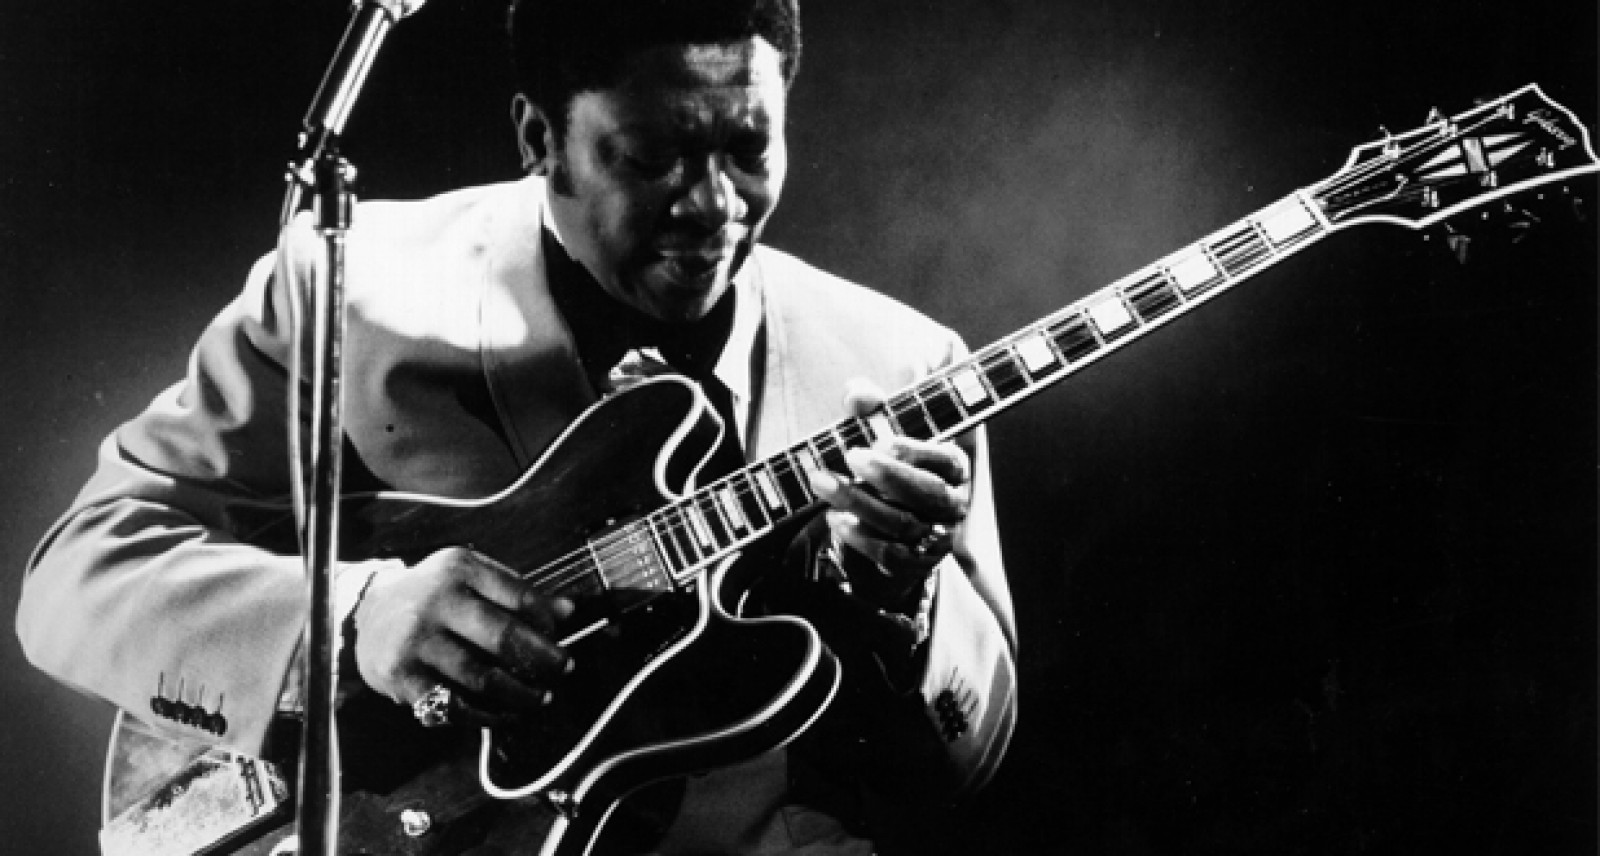 Daily 5 Today We Bid A U To Bb King The King Of Blues